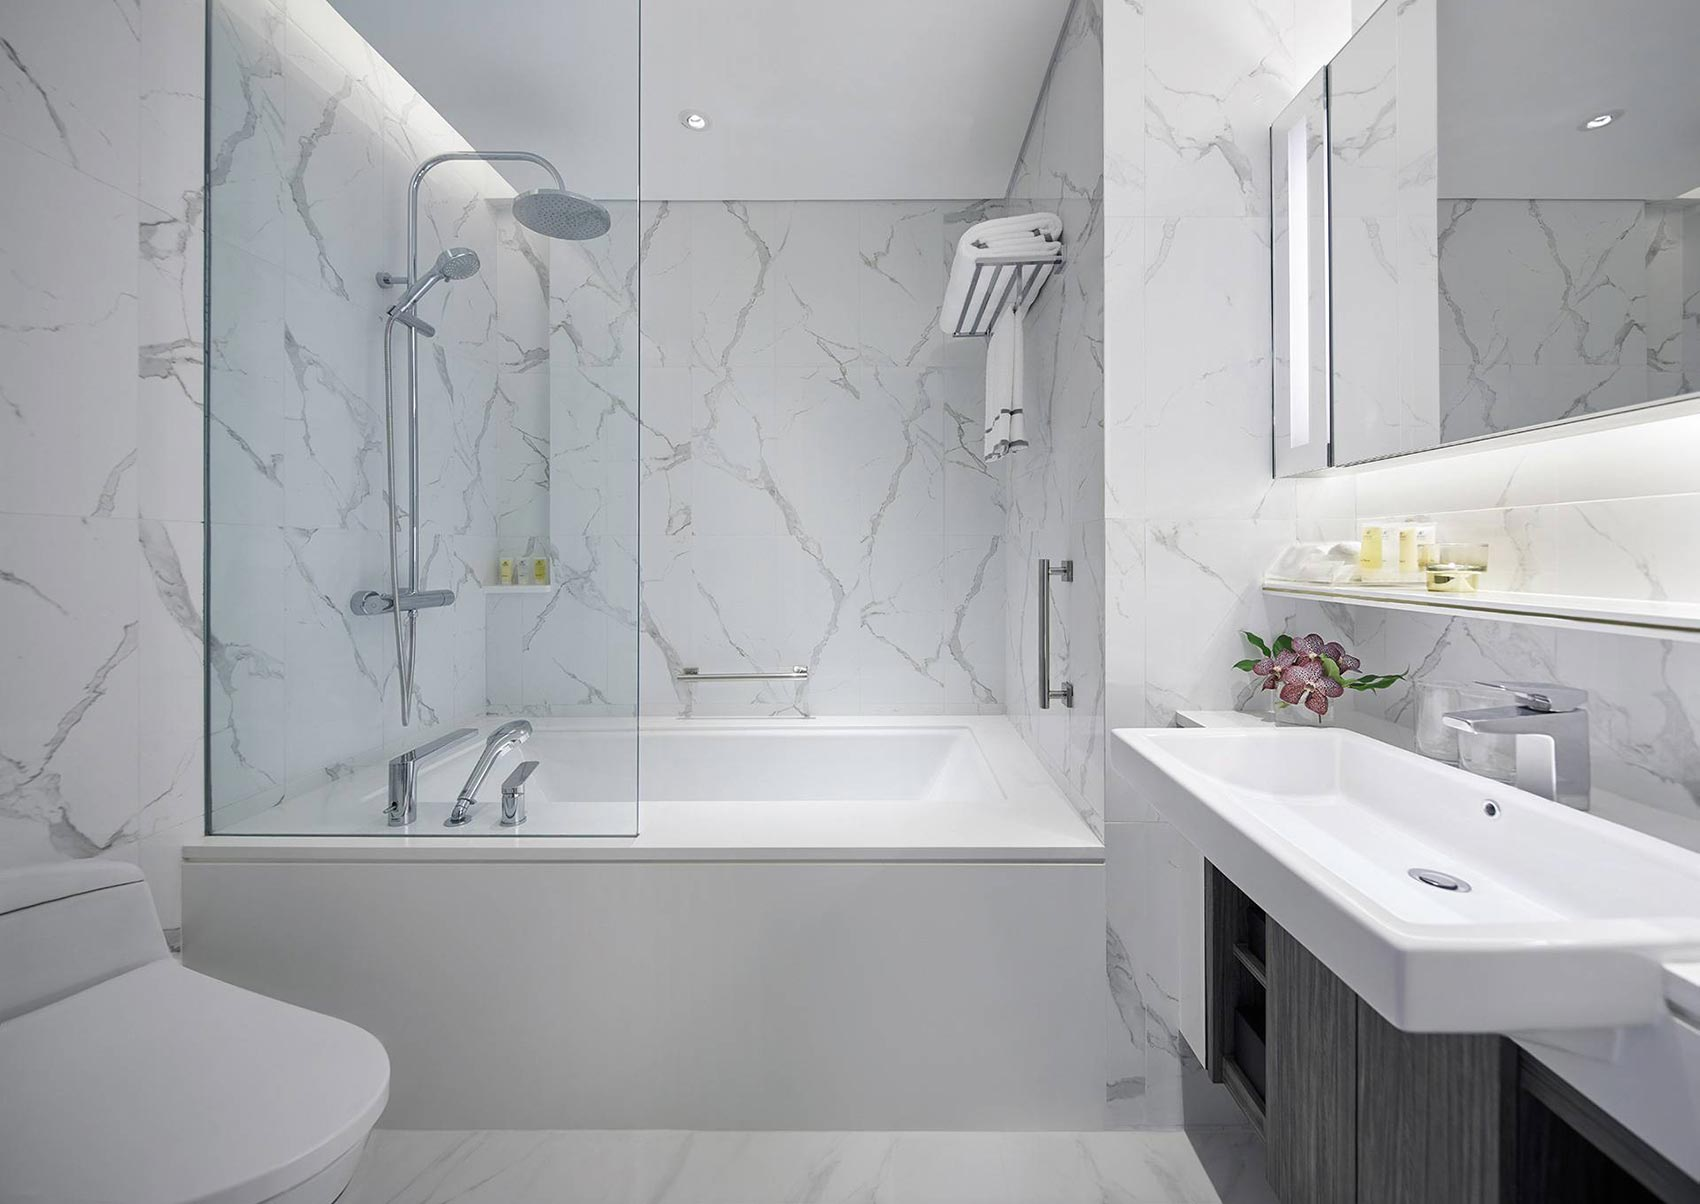 Somerset Maison Asoke bathroom